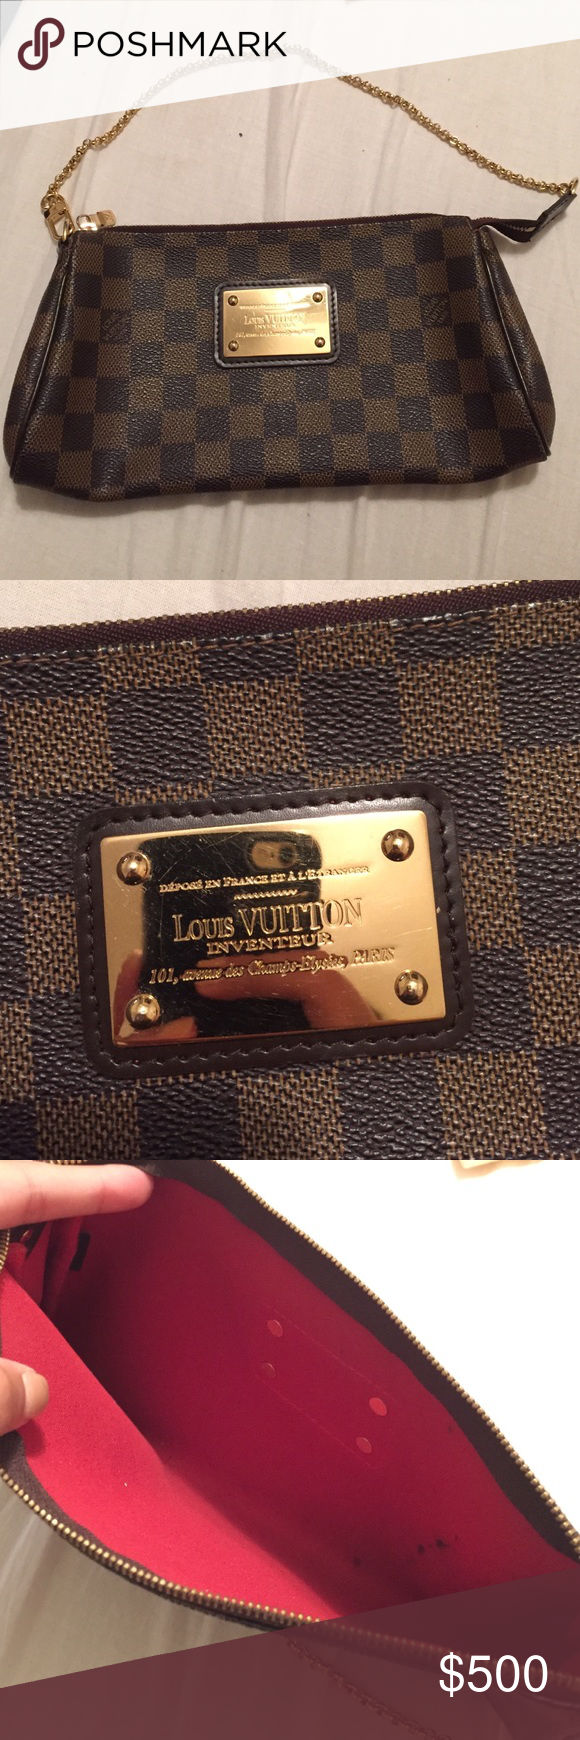 Louis Vuitton Clutch Authentic Louis Vuitton clutch, serial number D04018,  original bag but no tags. Got it as a gift from my mom but never used.